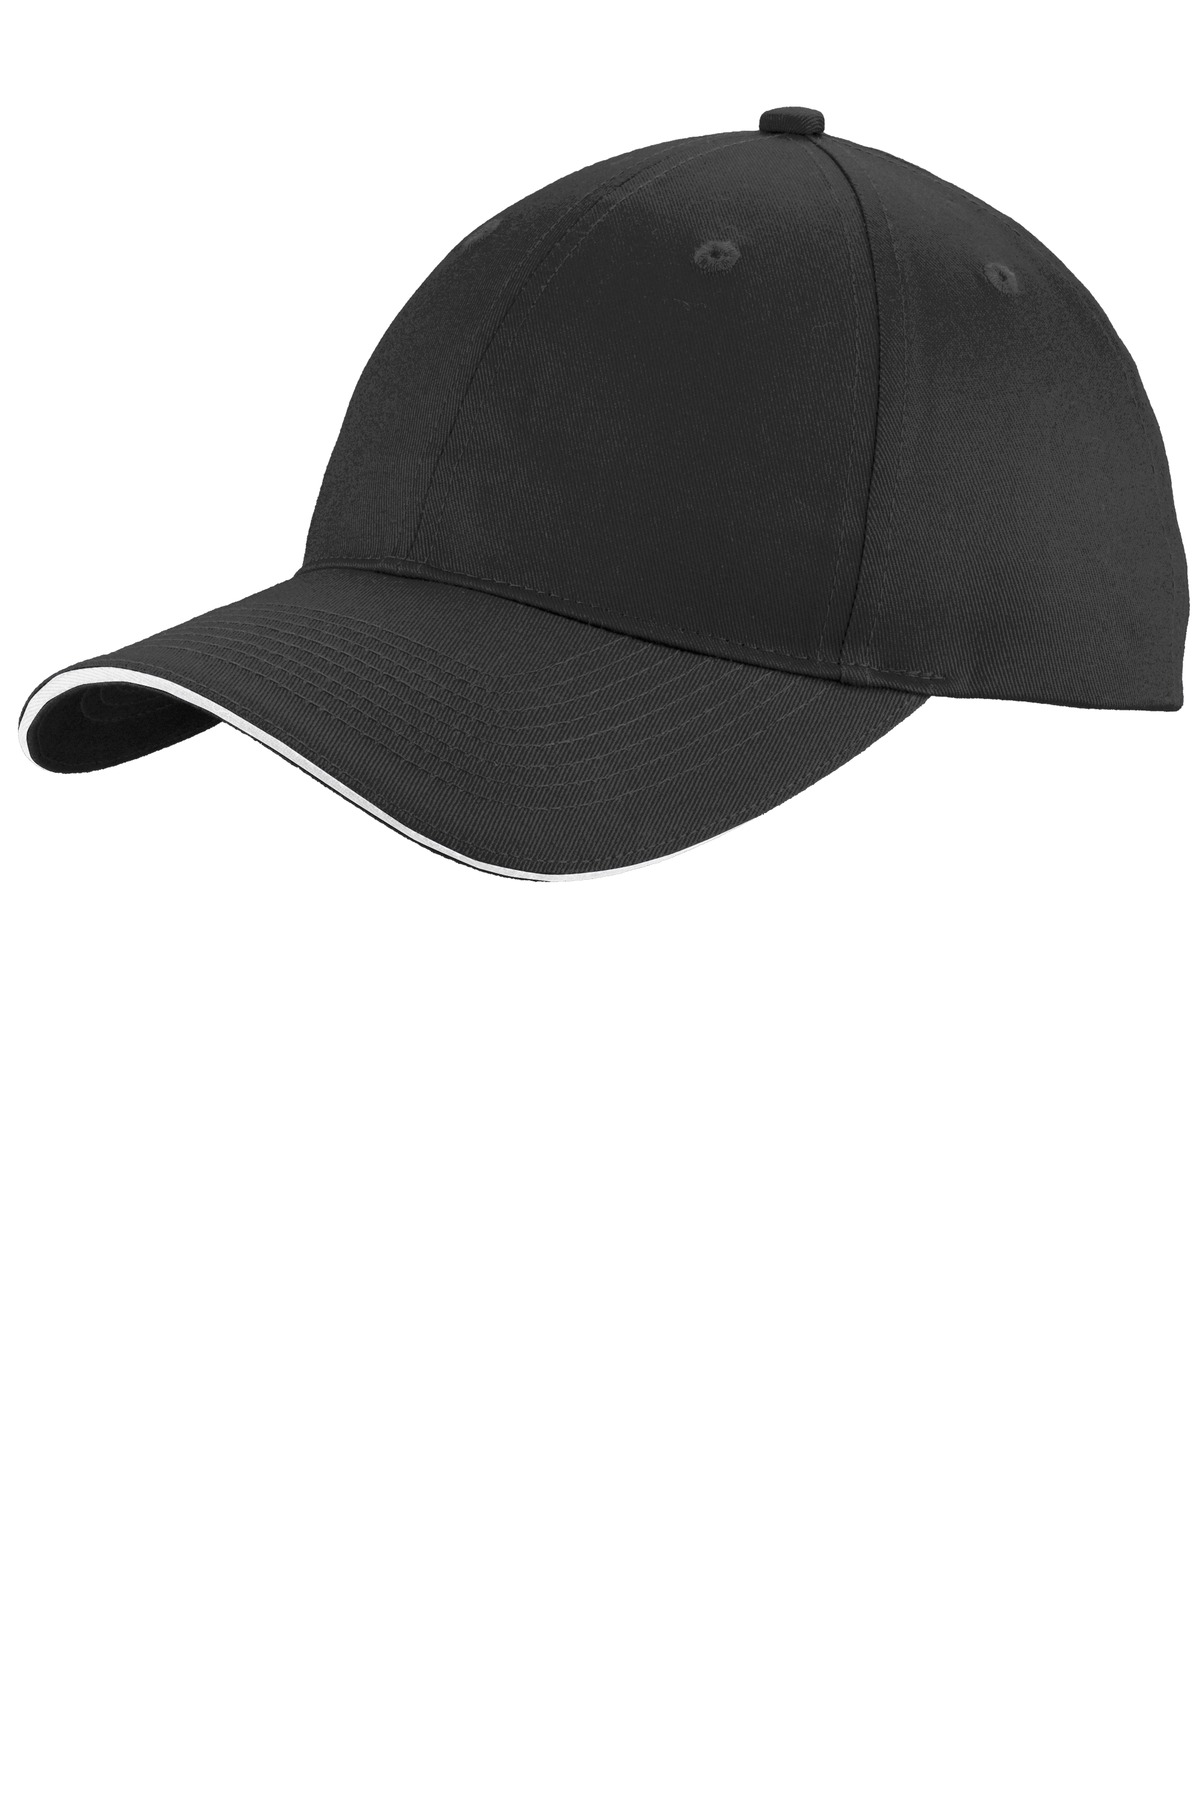 Port & Company  C919 - Unstructured Sandwich Bill Cap